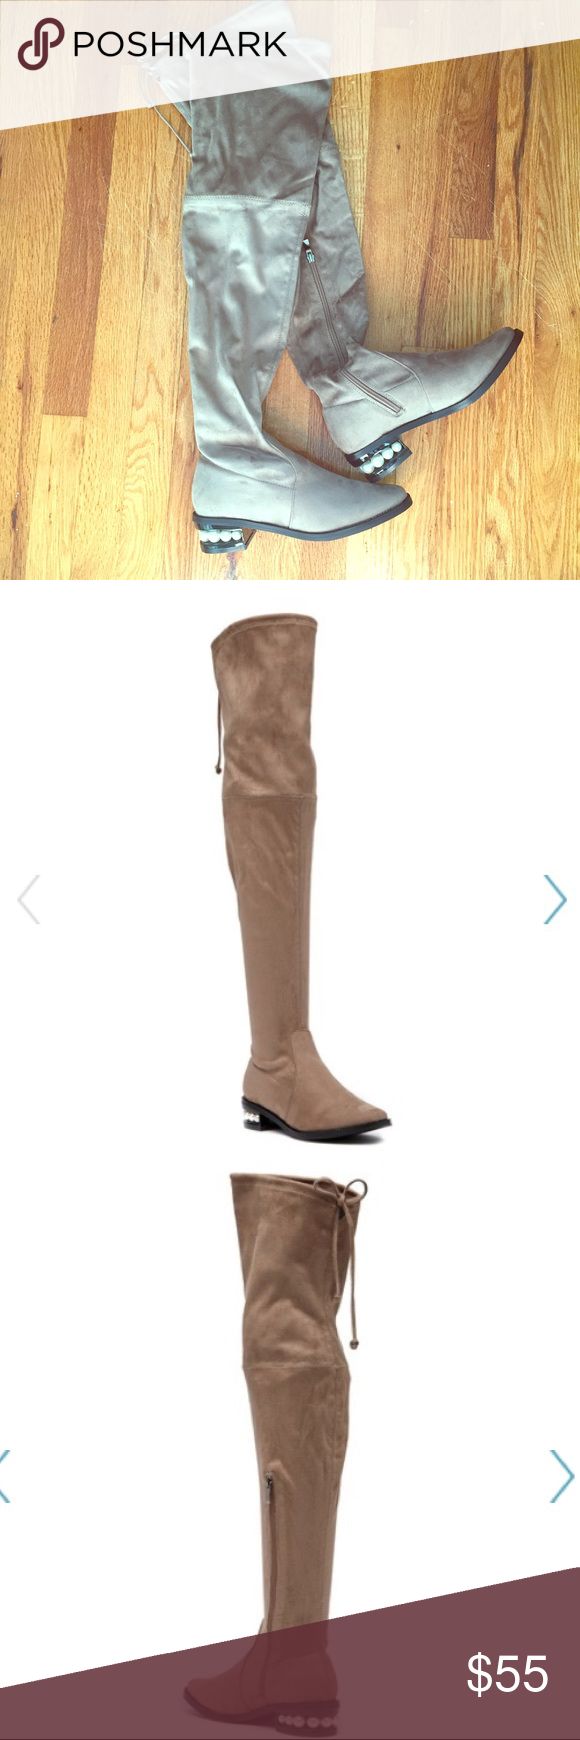 e7a73d92363 Catherine Malandrino Perse Over the Knee Boots Adorable thigh high boots in  neutral taupe (see stock photos for accurate color) with pearl embellished  heels ...